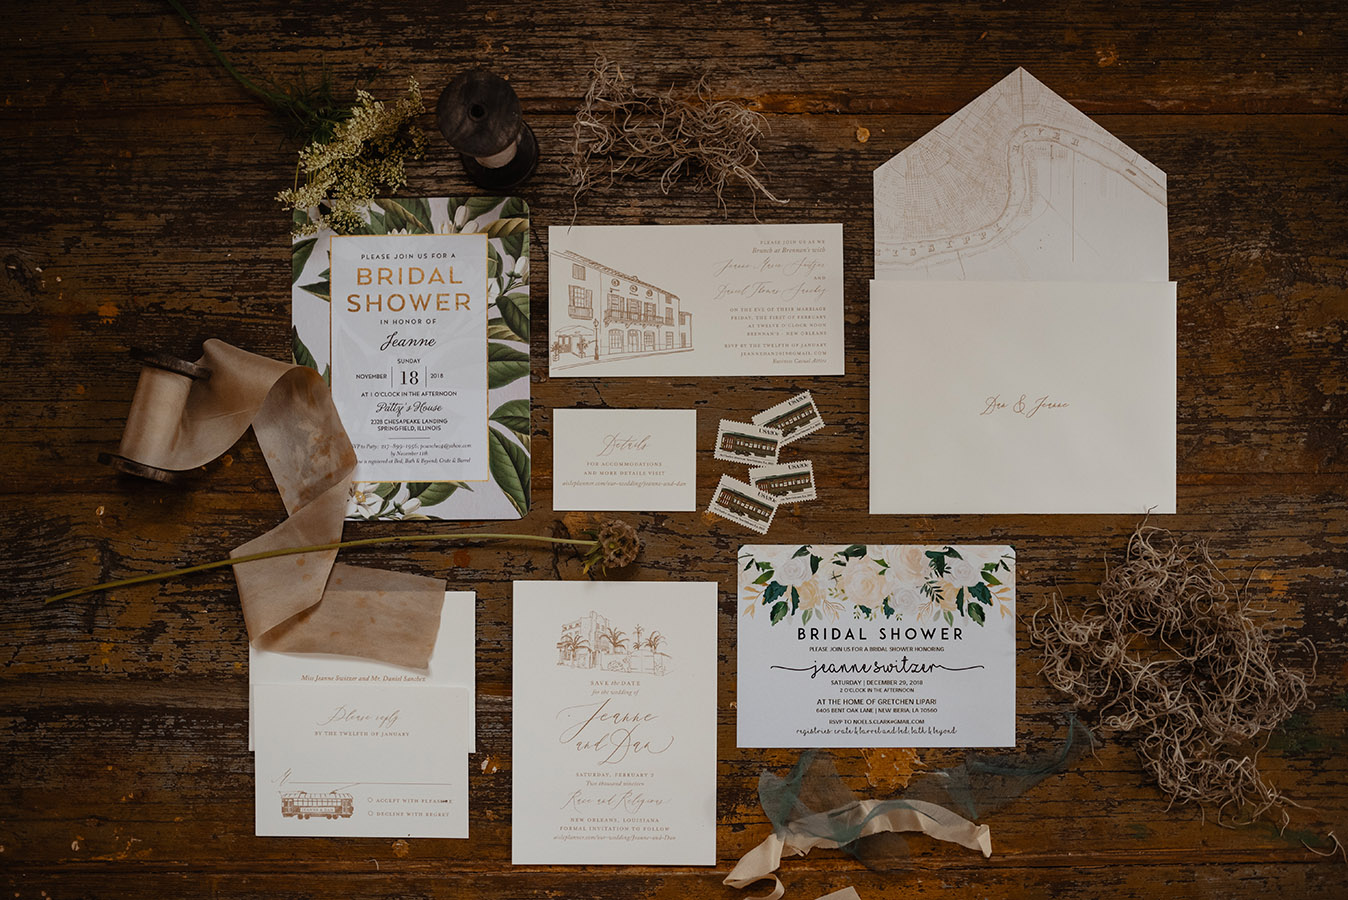 """Jeanne and Dan invited 120 of their family and friends to celebrate their wedding at Race and Religious in New Orleans. """"On their trips into town we also worked closely with Scriptura to use elements such as New Orleans architecture, icons and maps to create their invitation suite and other personalized items for their wedding,"""" shares Rena Sweeney of Alchemy Events."""